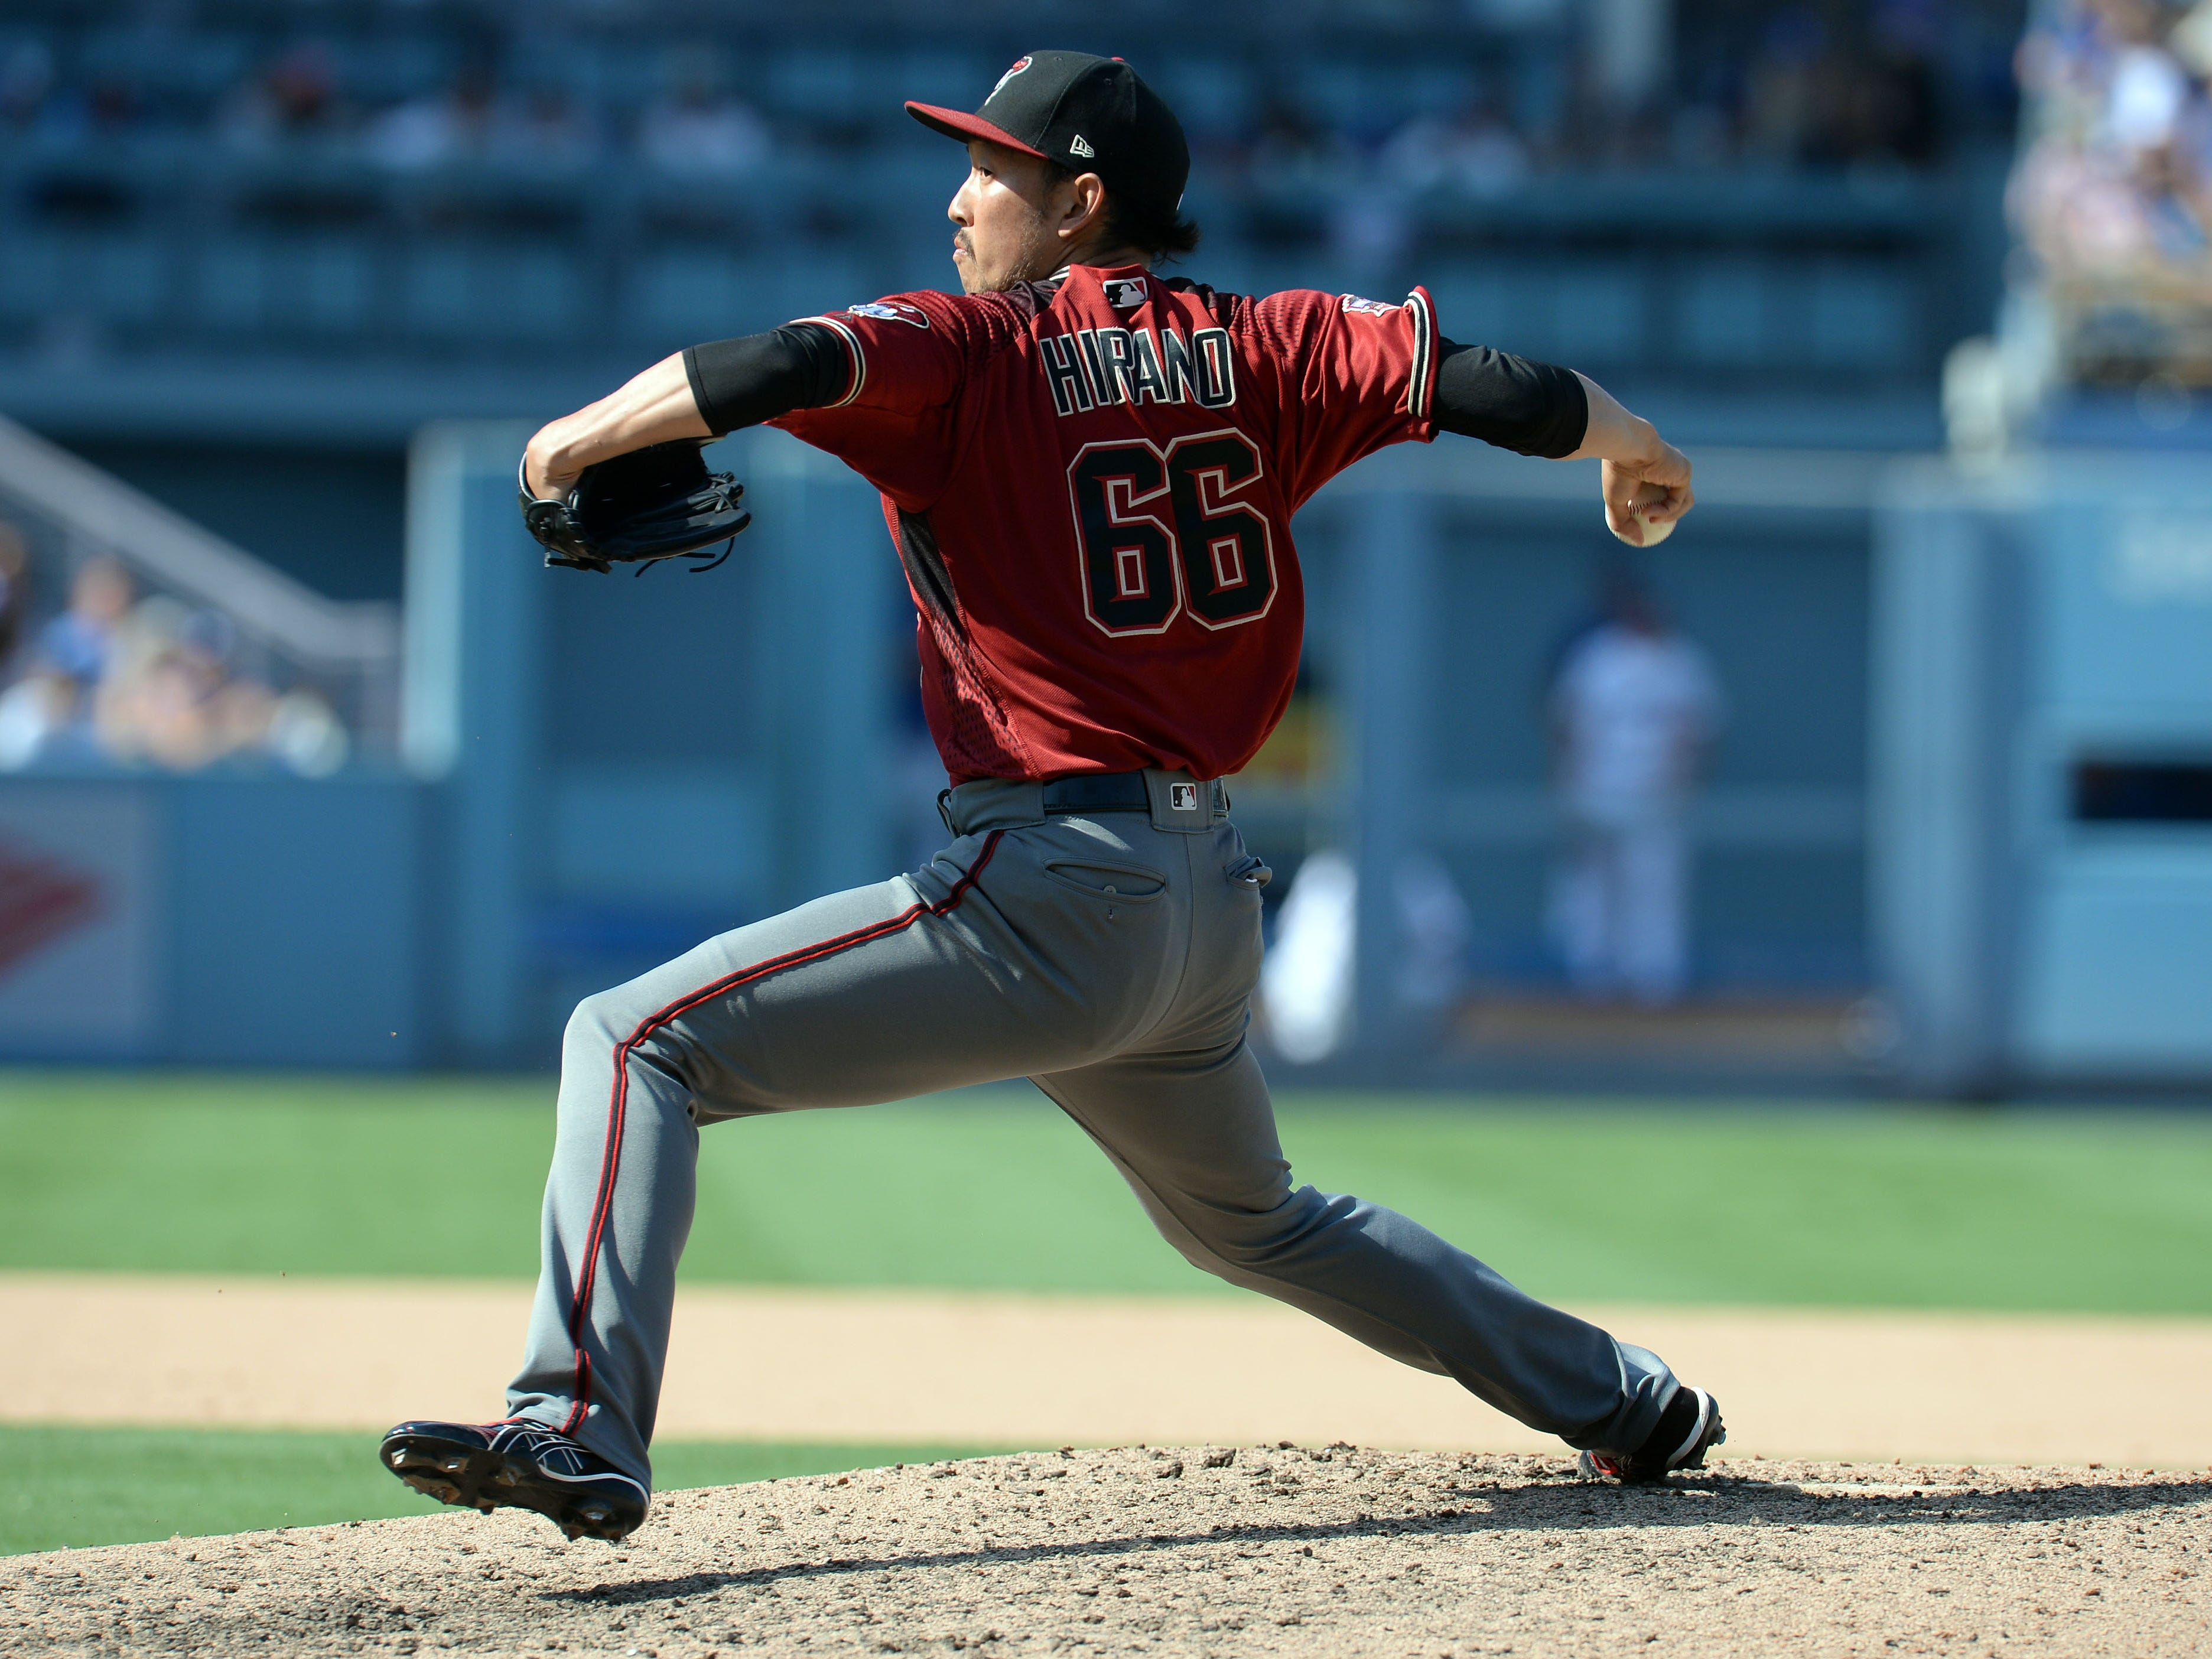 September 2, 2018; Los Angeles, CA, USA; Arizona Diamondbacks relief pitcher Yoshihisa Hirano (66) throws against the Los Angeles Dodgers in the seventh inning at Dodger Stadium. Mandatory Credit: Gary A. Vasquez-USA TODAY Sports